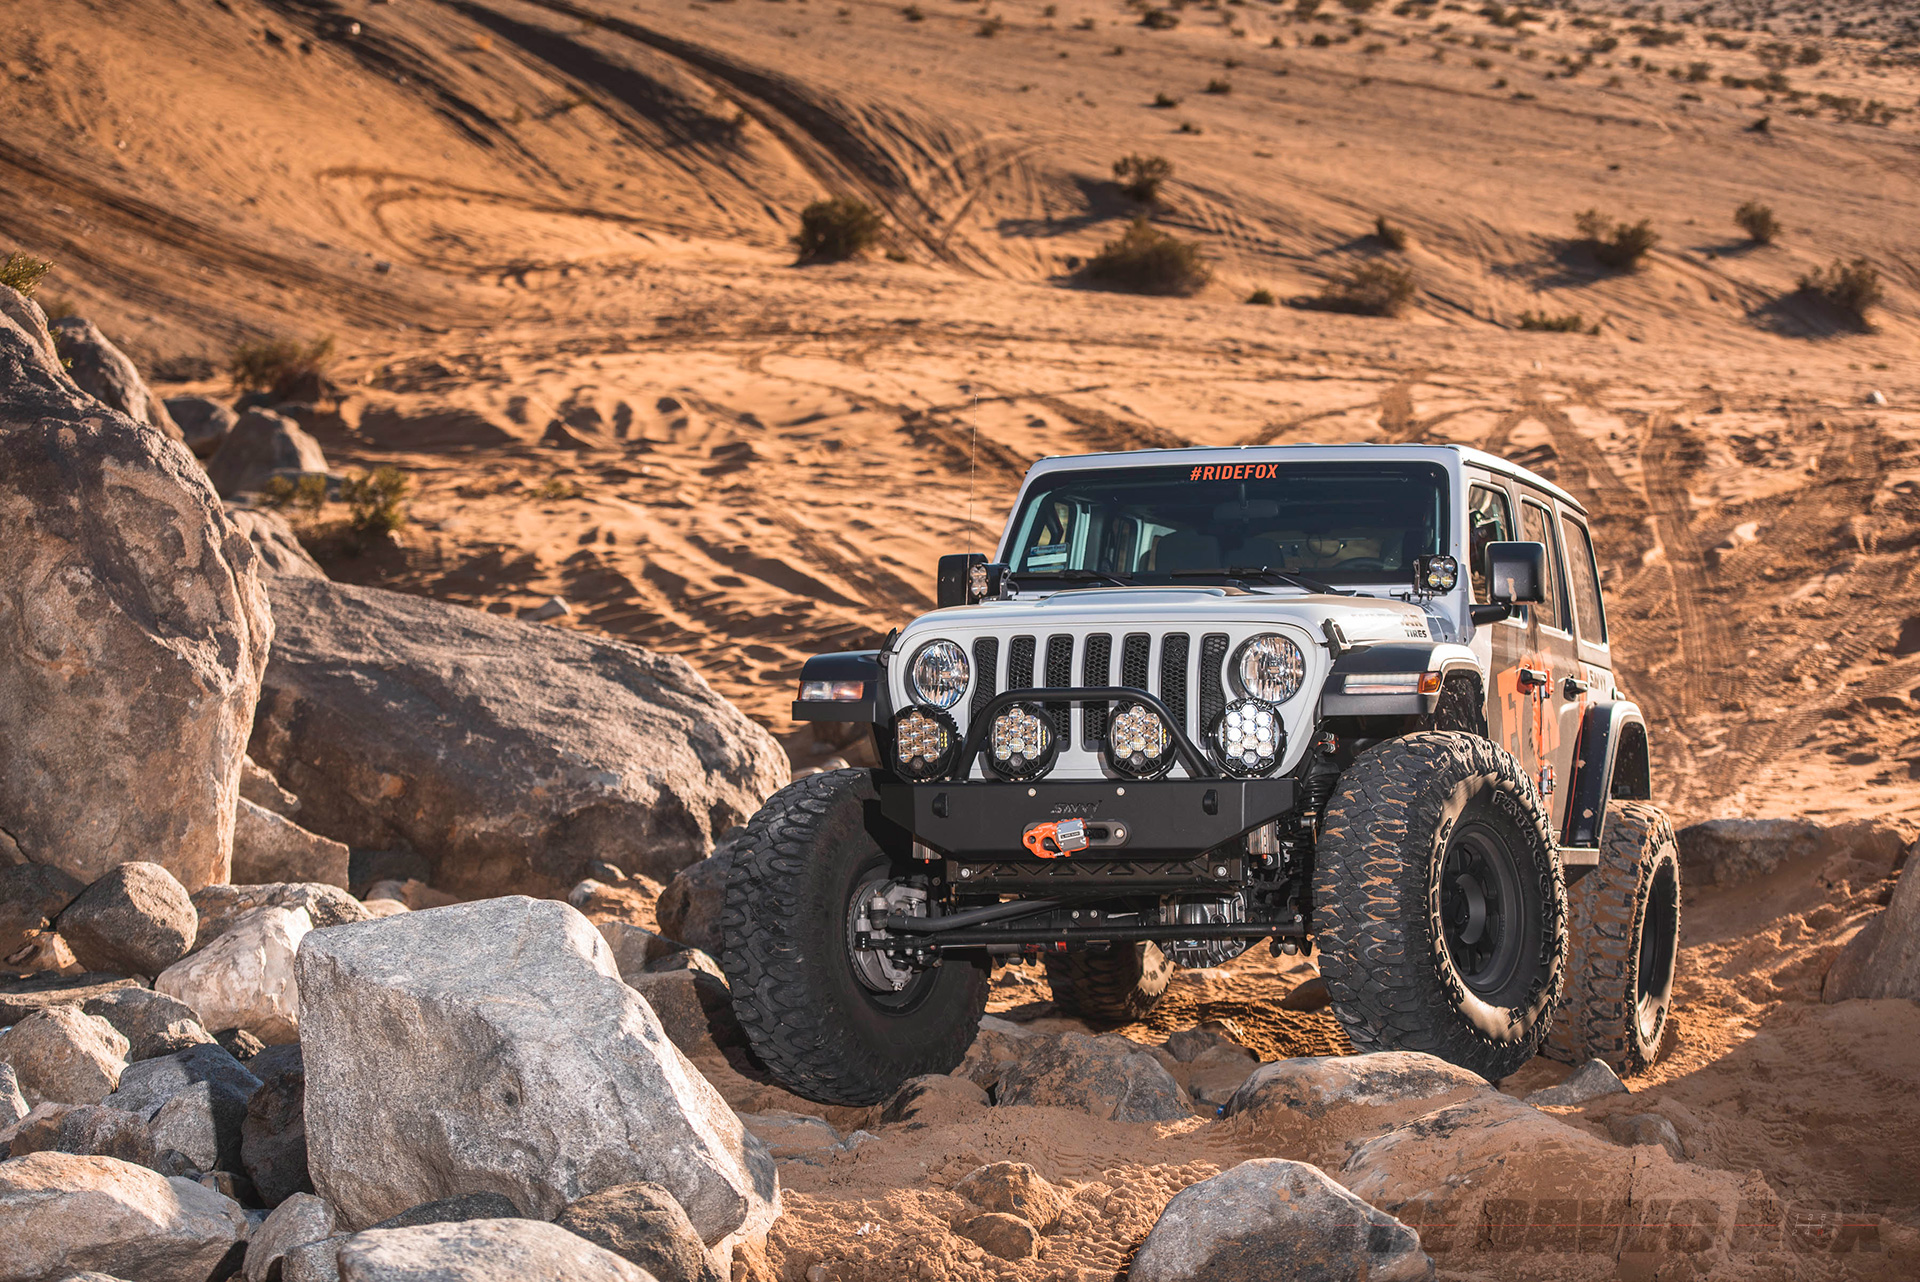 Dan Fresh's 2018 White Jeep Wrangler Unlimited Rubicon JL with 40 inch Milestar Patagonia MT tires